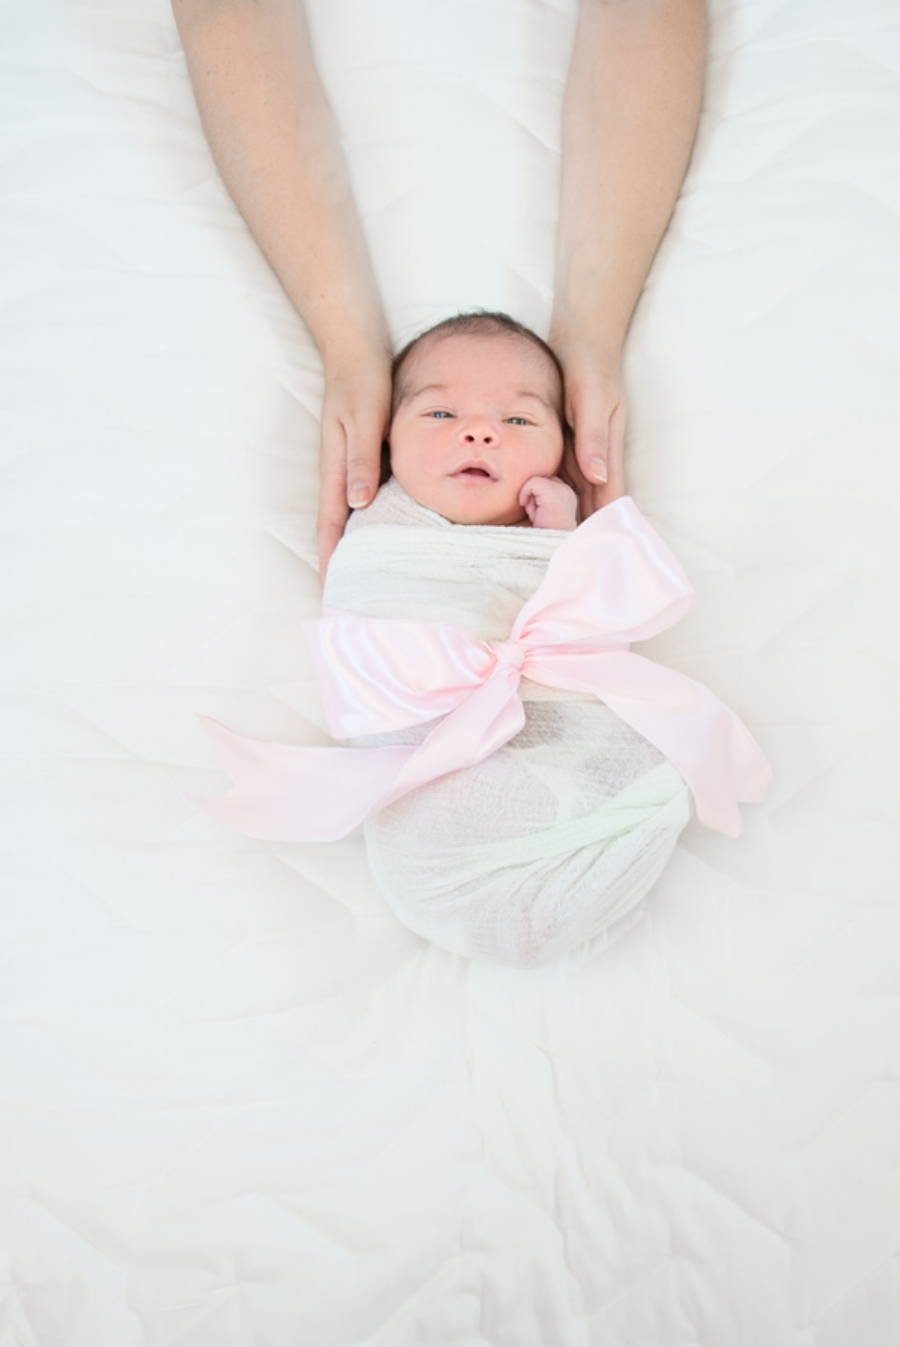 Baby Girl Newborn Photos - Reflecting Grace Photography